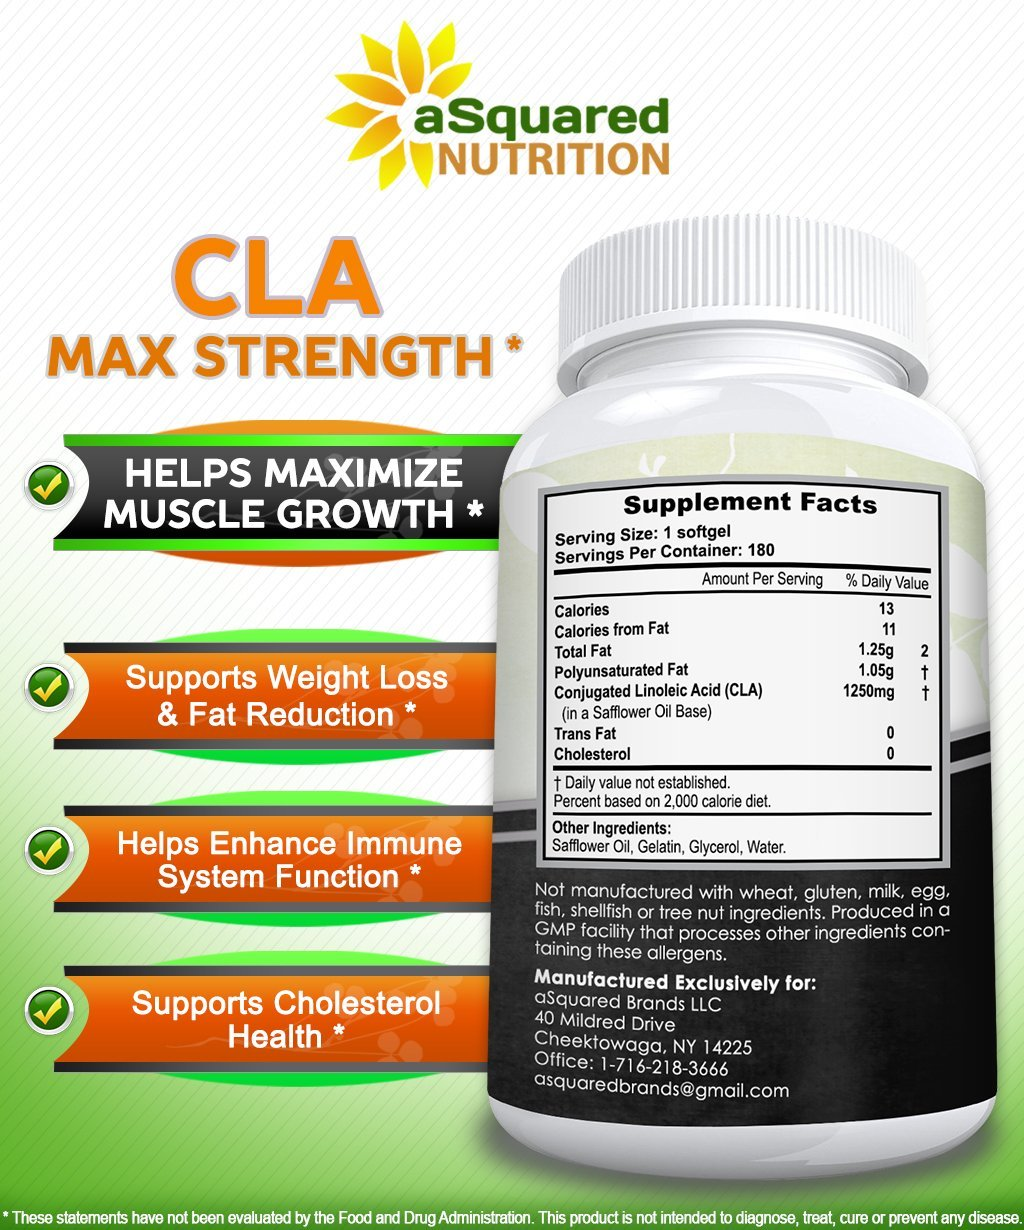 Cla Safflower Oil Contains Chemicals That May lose Weight